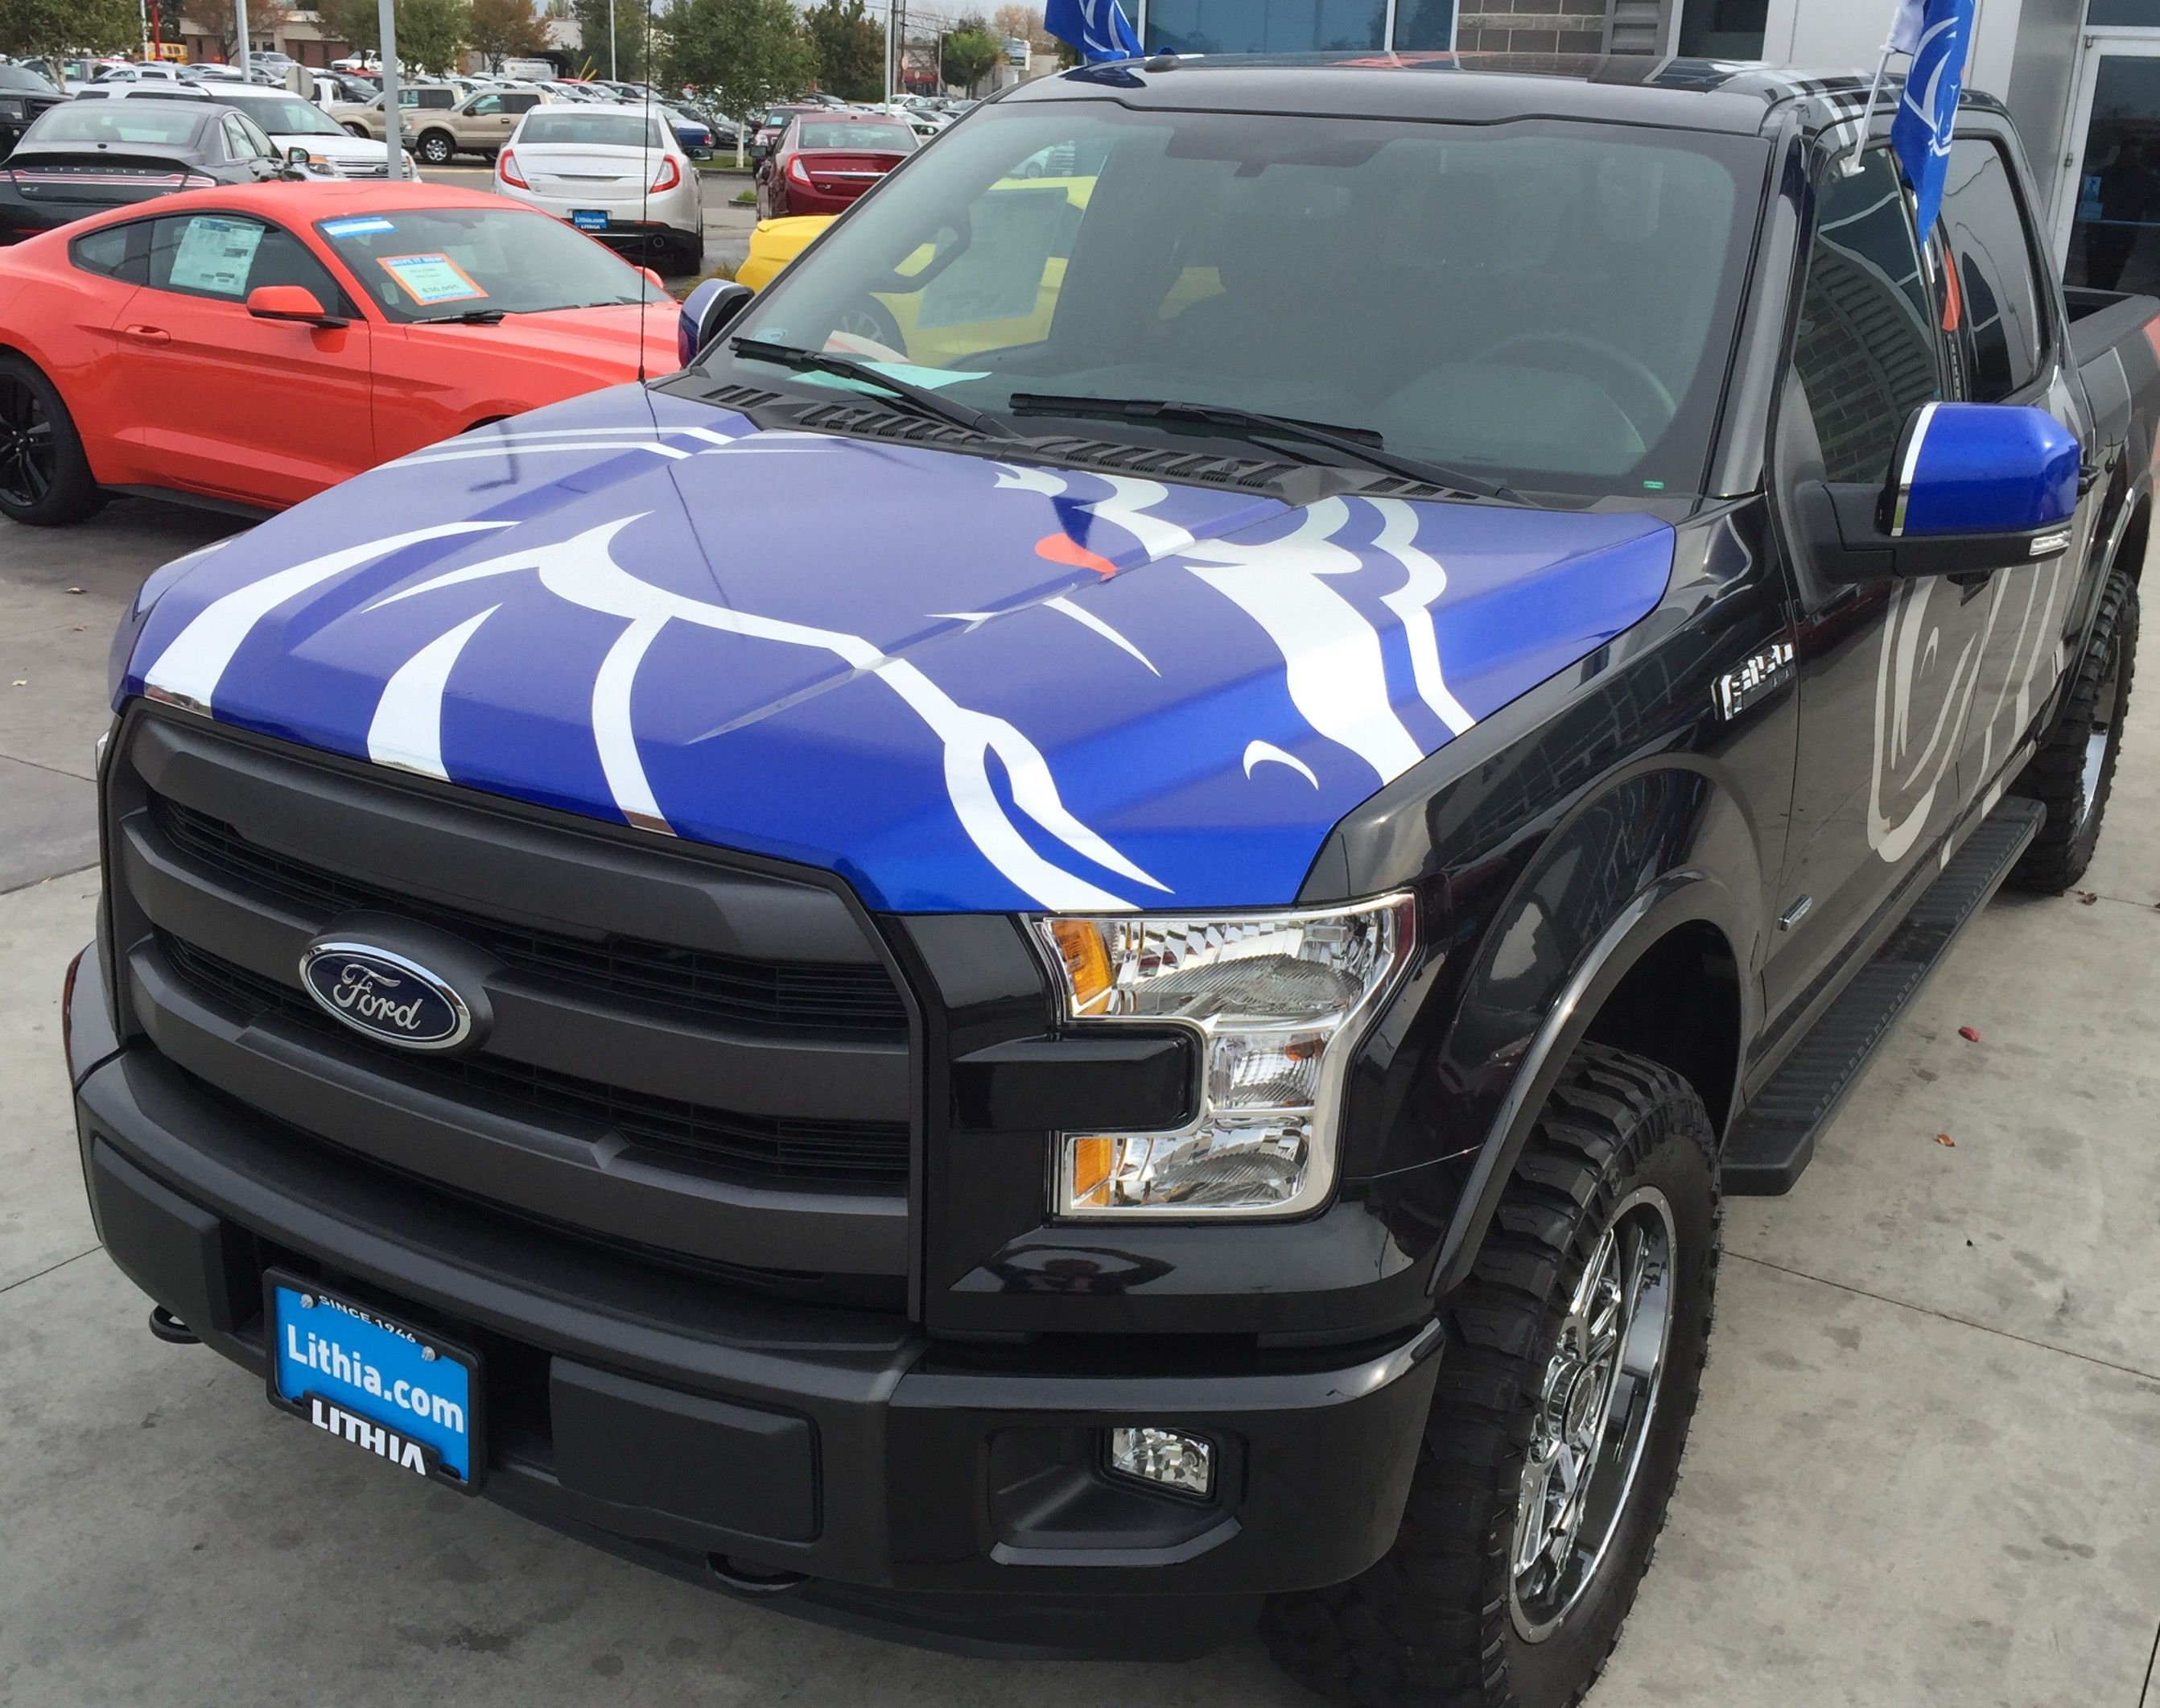 Ford F 150s For Sale Used On Oodle Marketplace - Ford